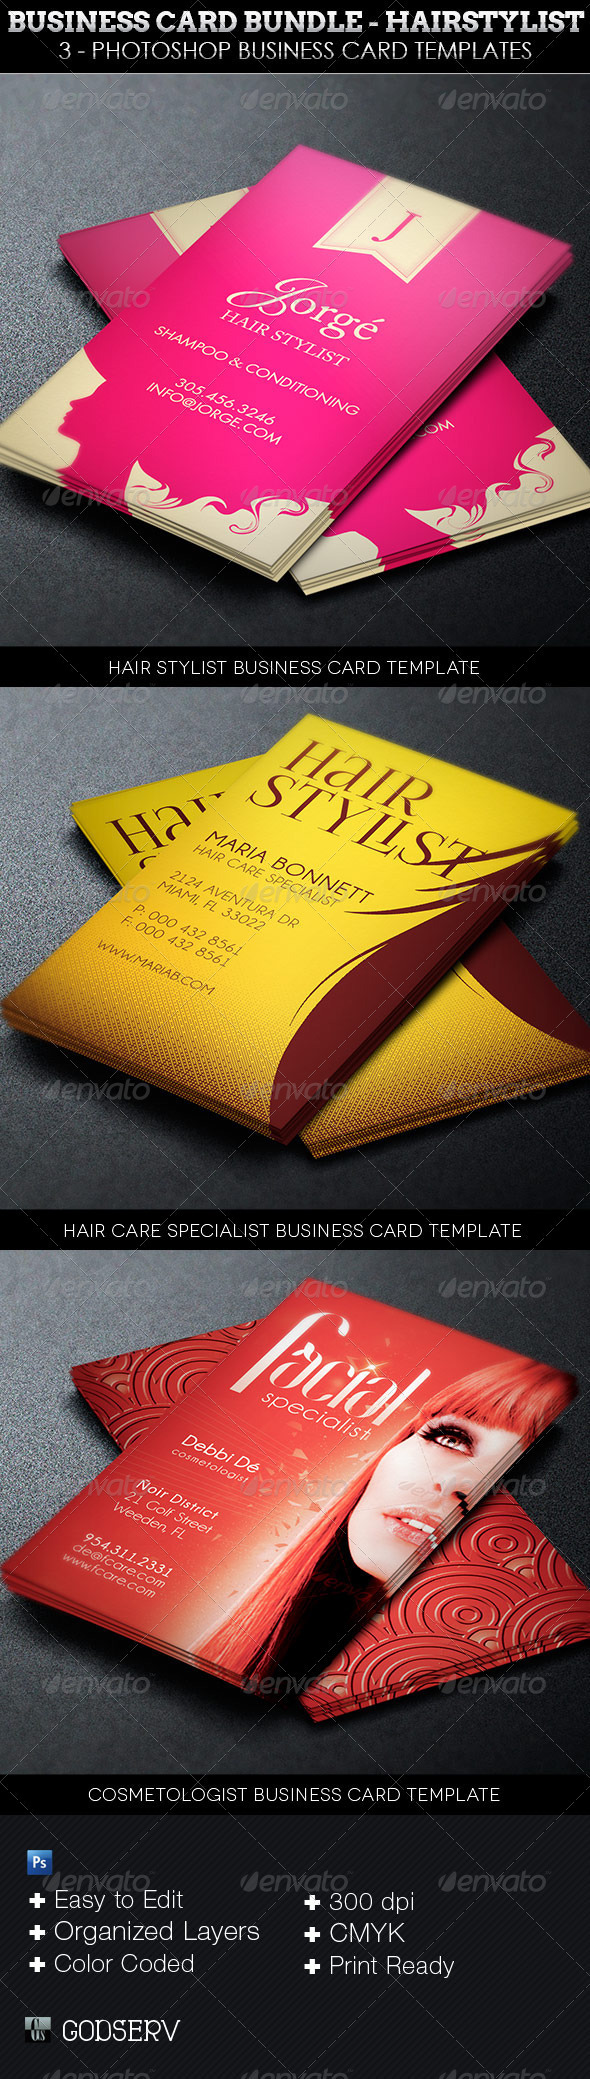 Business card template bundle hairstylist on behance 4 one click color options in each card organized layers color coded layers cmyk300 dpi print ready application requirement photoshop cs4 or reheart Gallery